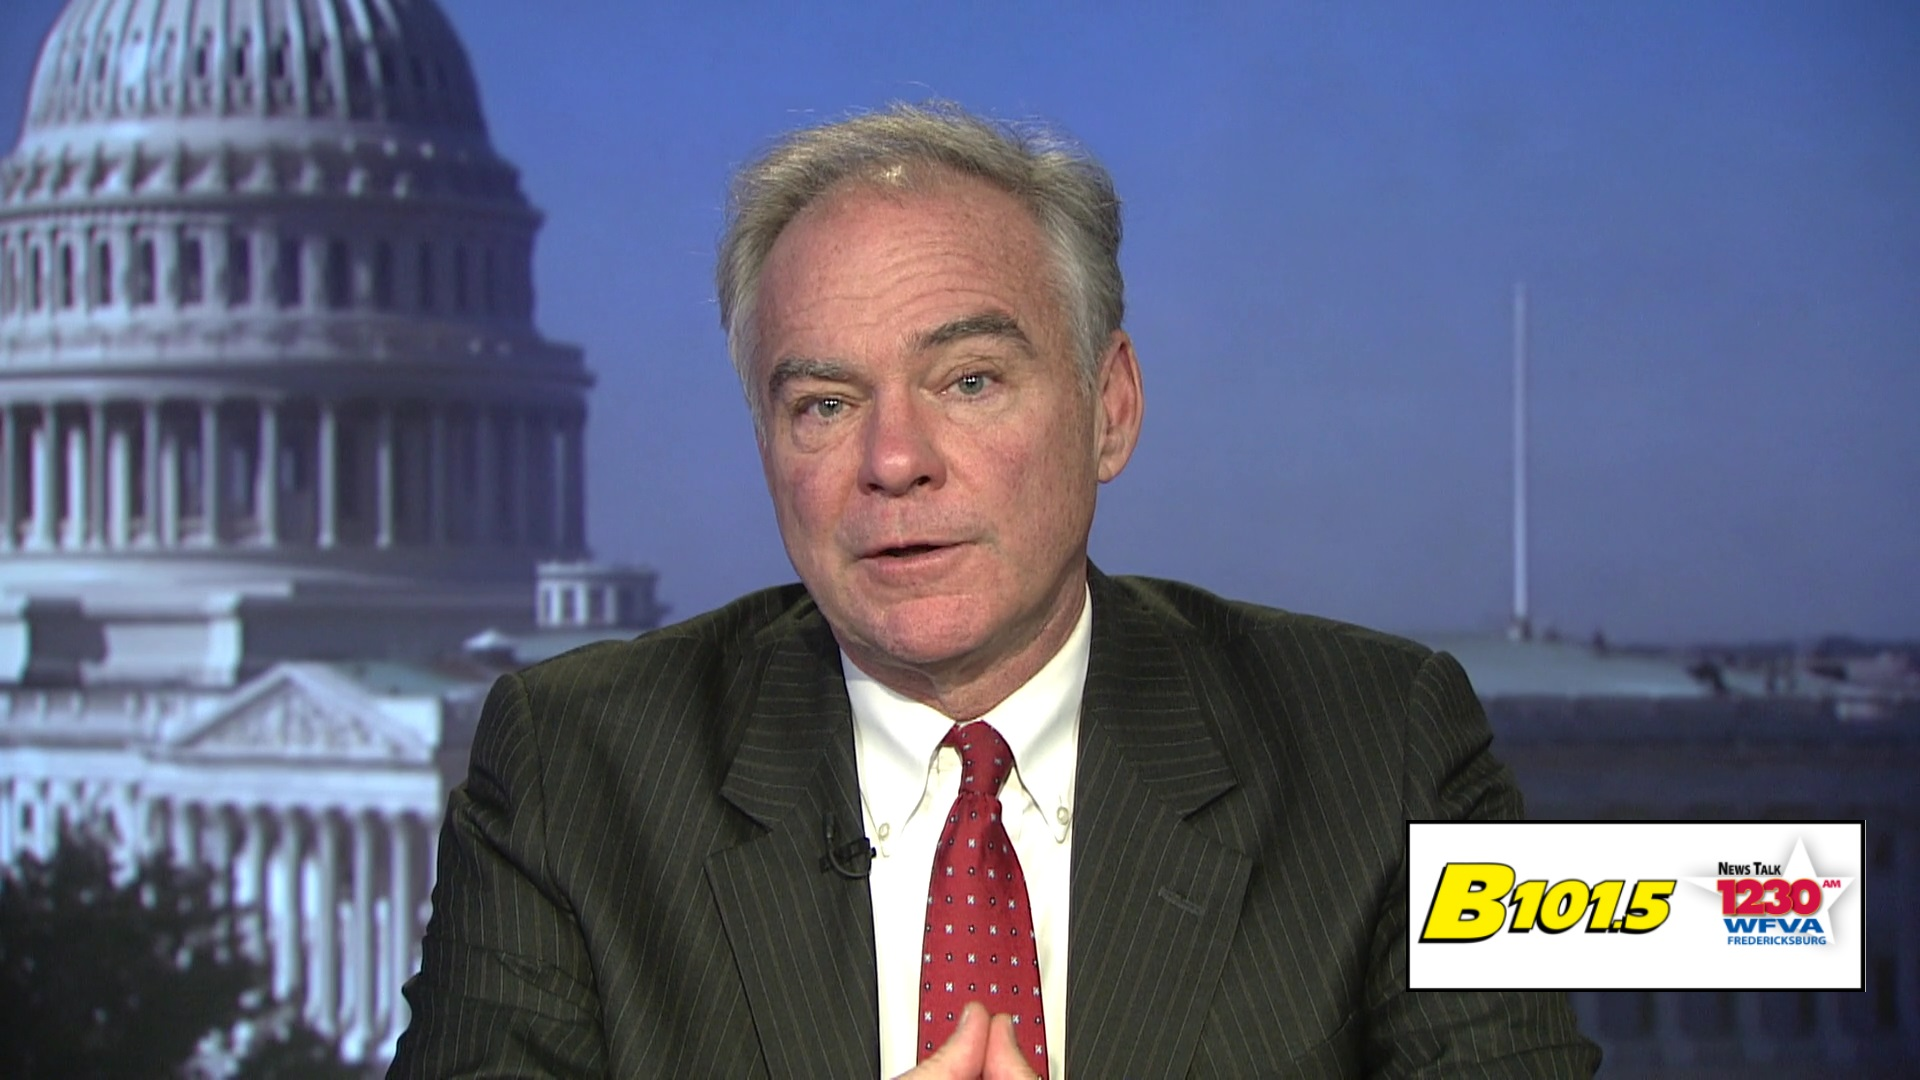 Kaine on raising the tobacco age and vaping